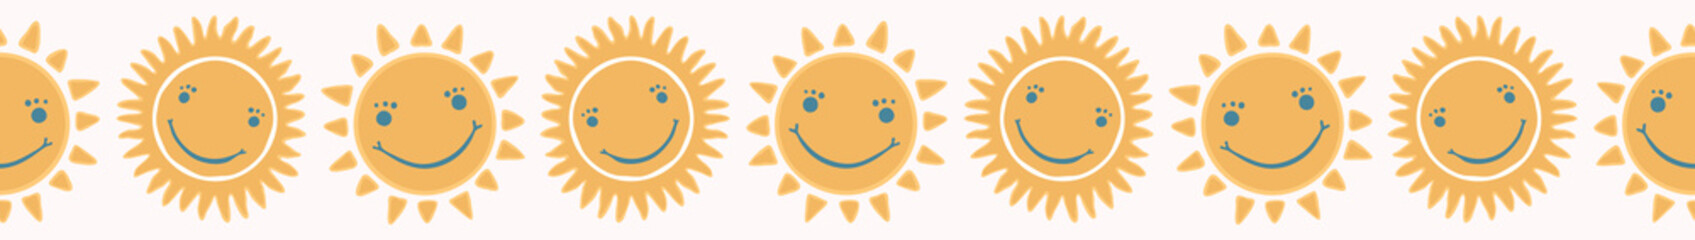 Cute cartoon sun with happy smiling face. Hand drawn seamless repeat border. Day sunset, sunrise, warm weather banner ribbon illustration for baby or kids.